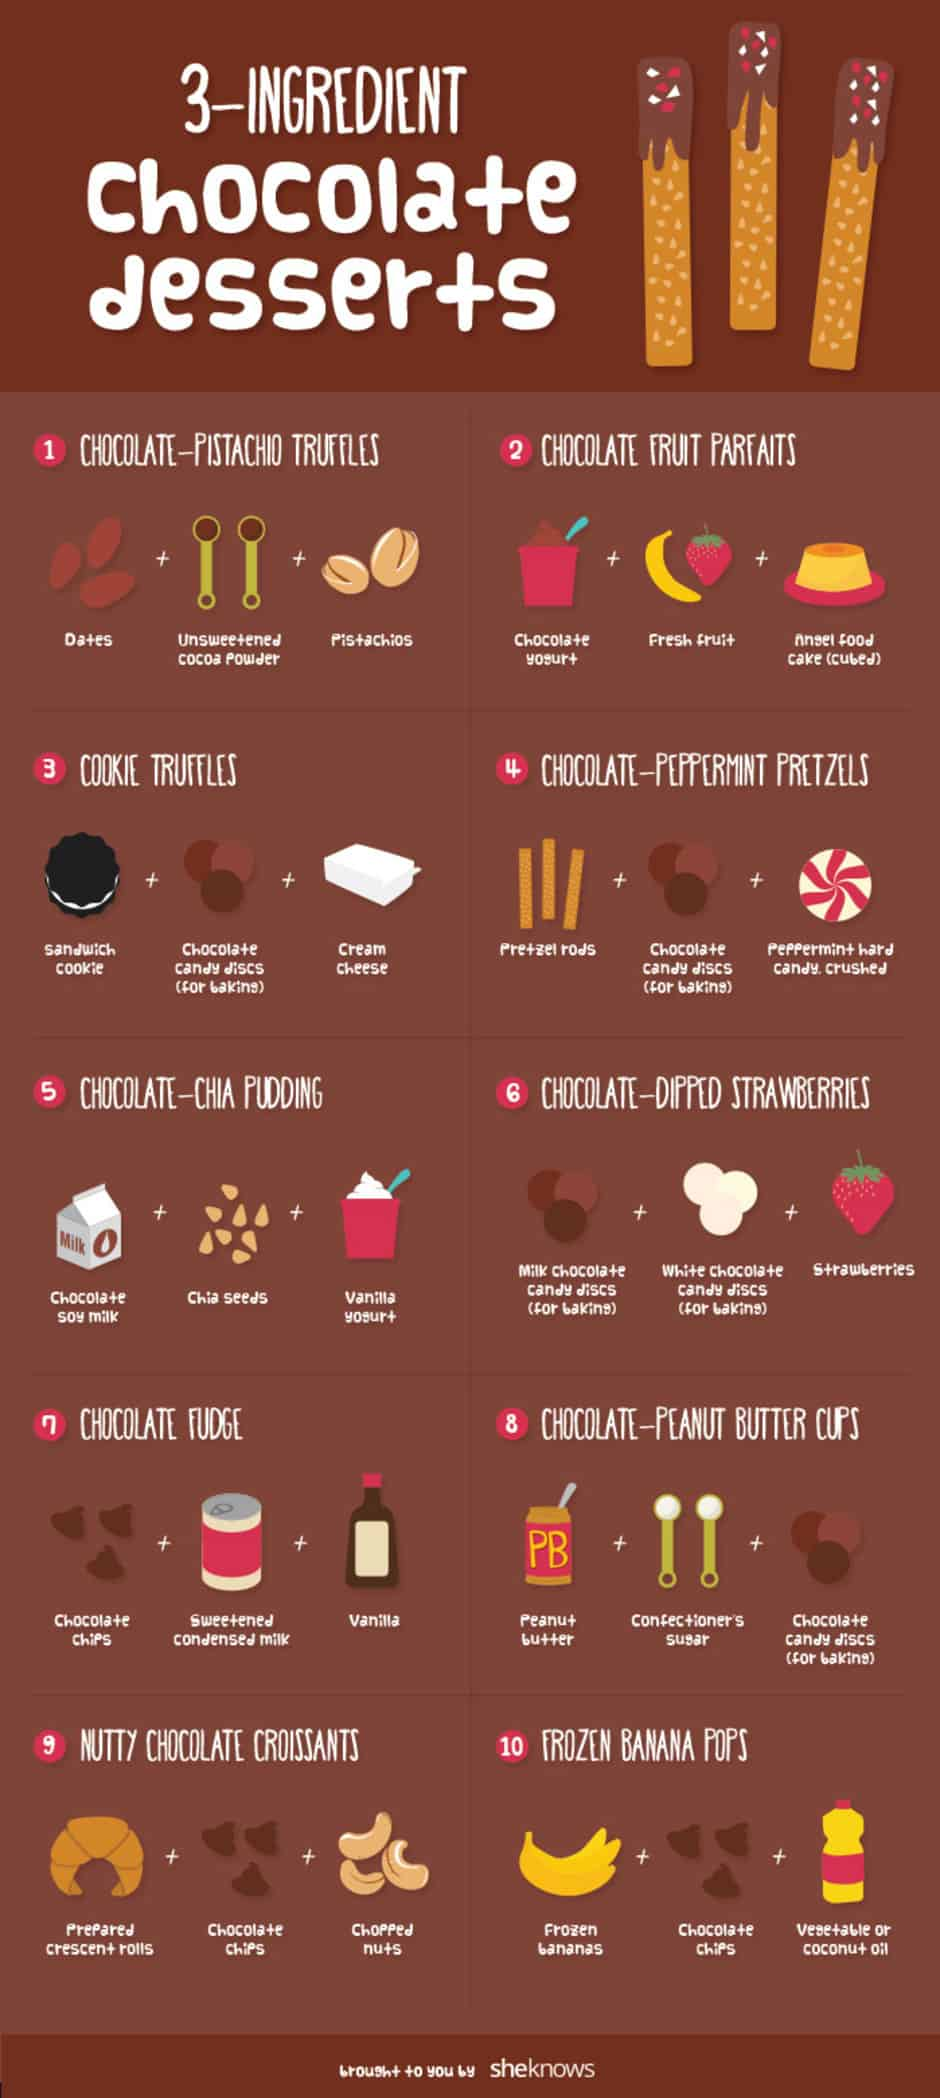 Saturday Snacking Easy Chocolate Desserts Daily Infographic